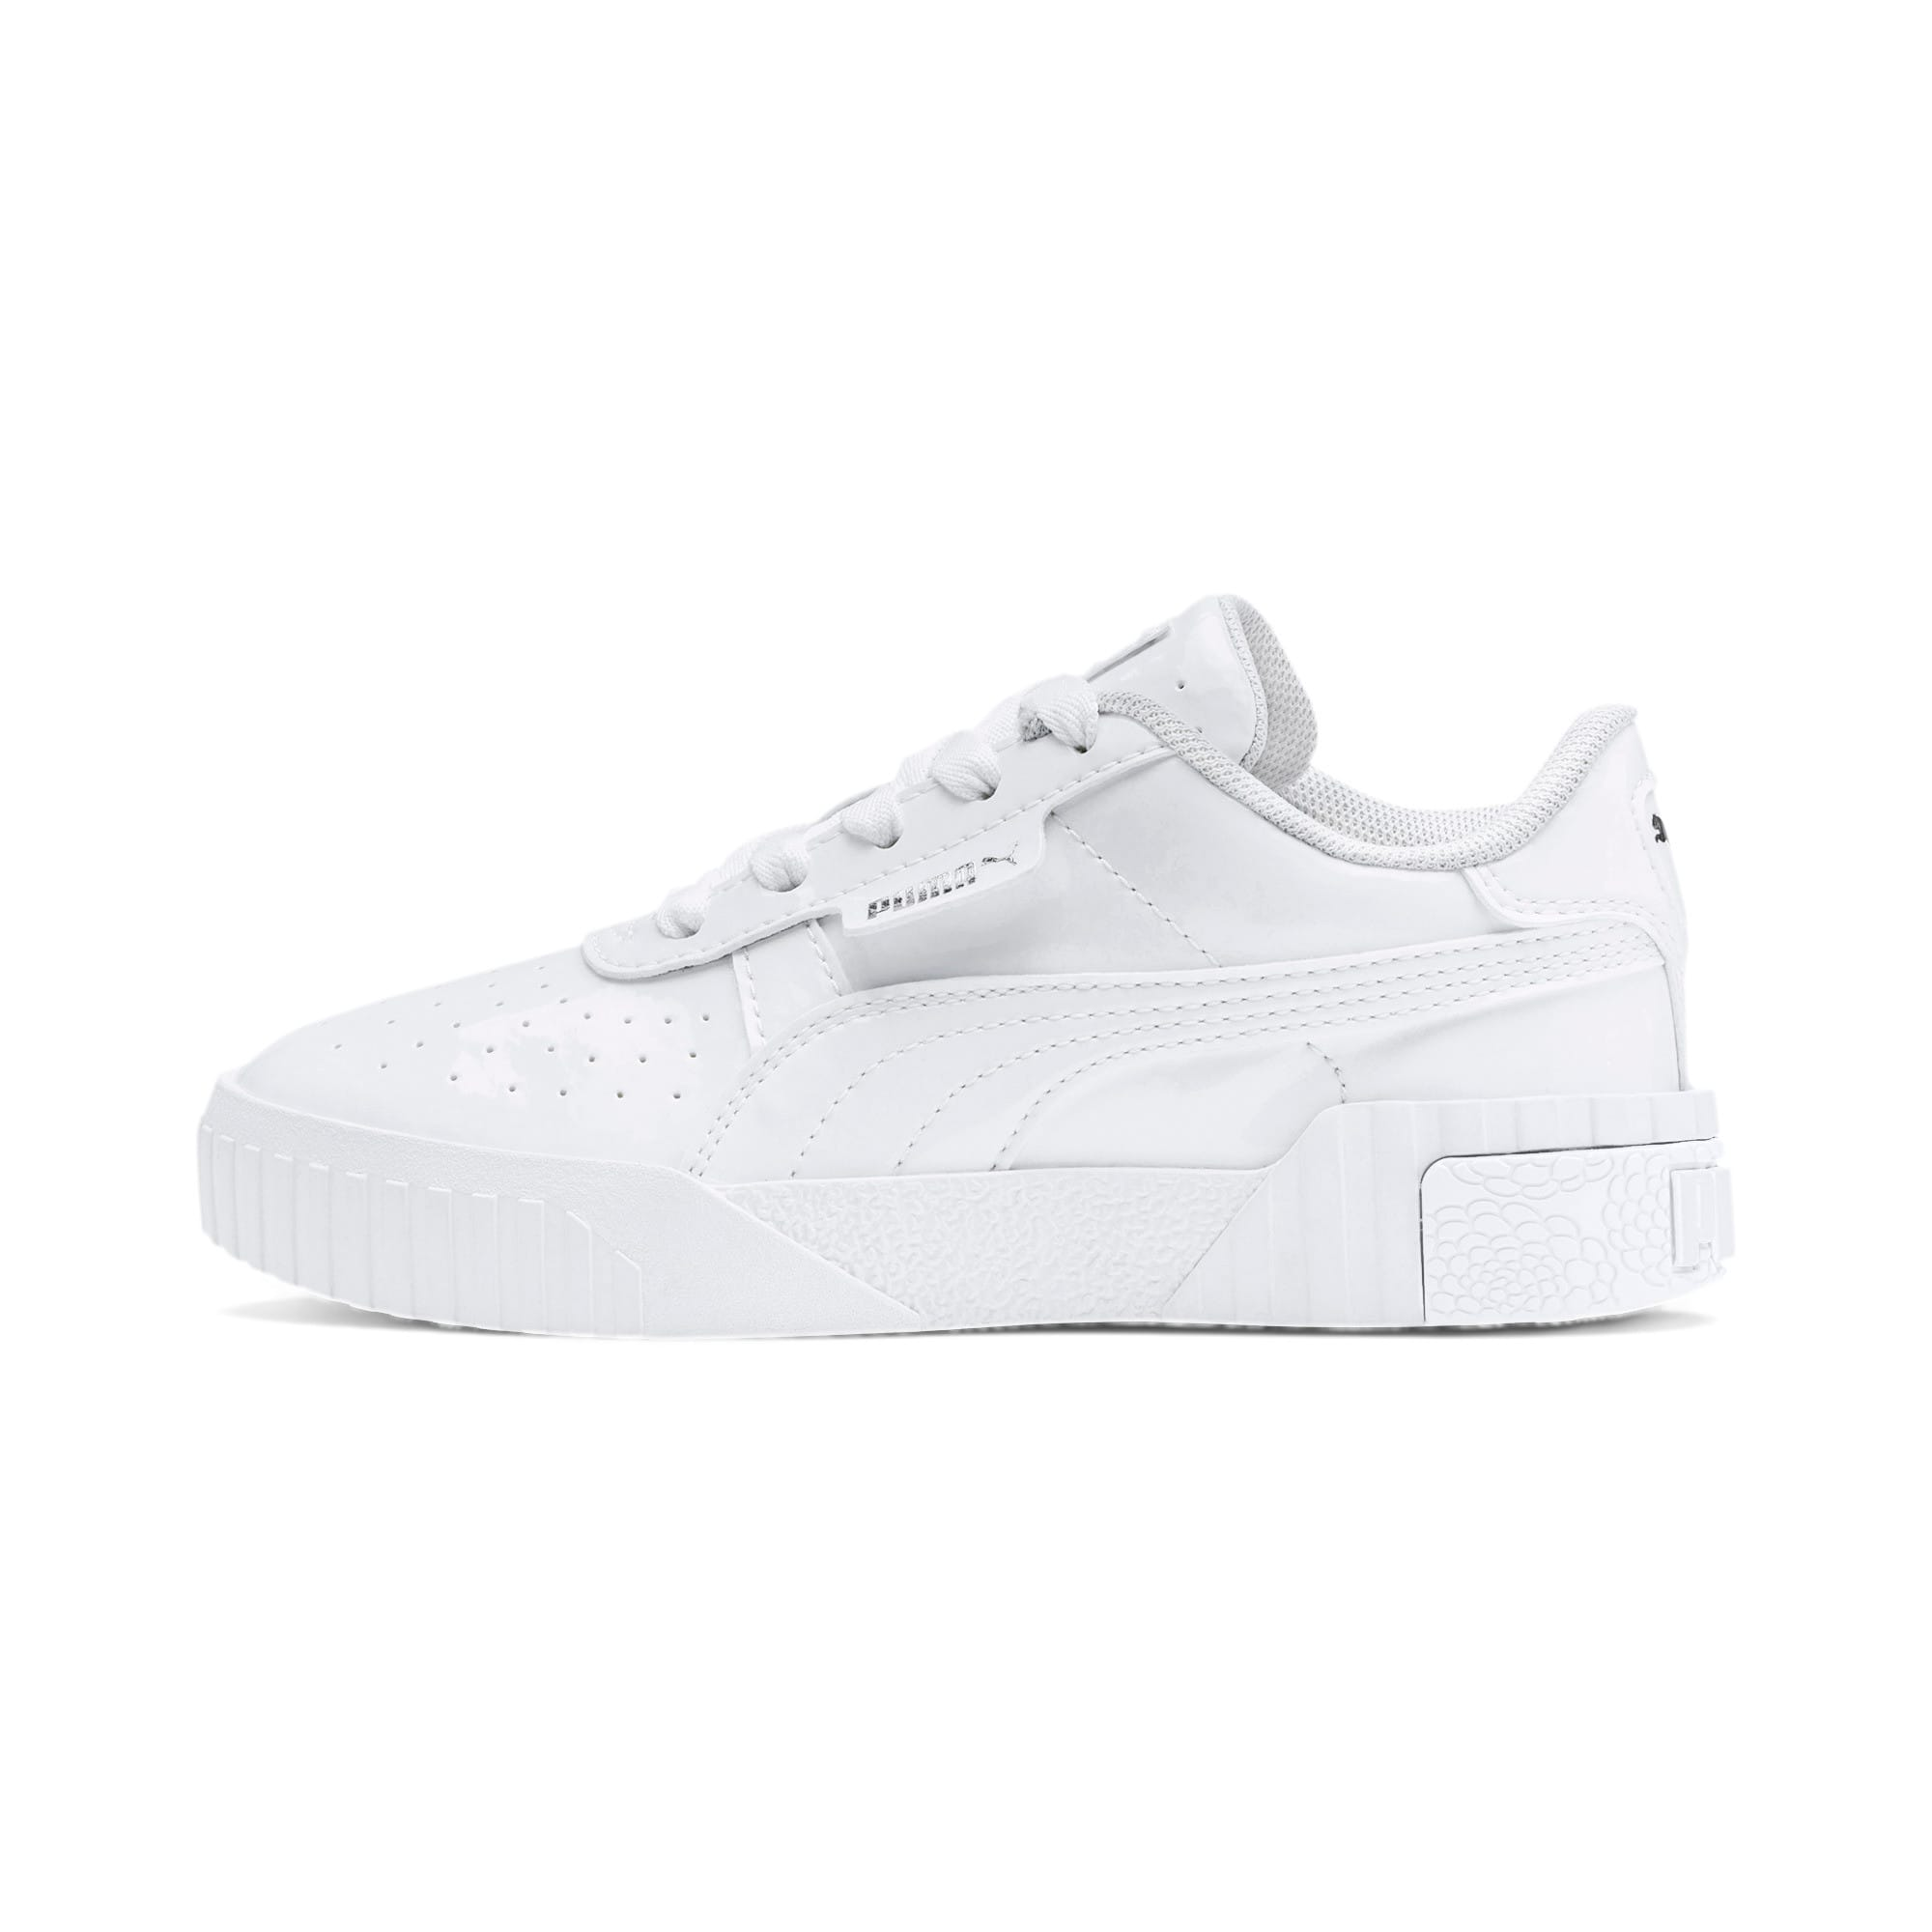 Thumbnail 1 of Cali Patent Kids' Trainers, Puma White-Puma White, medium